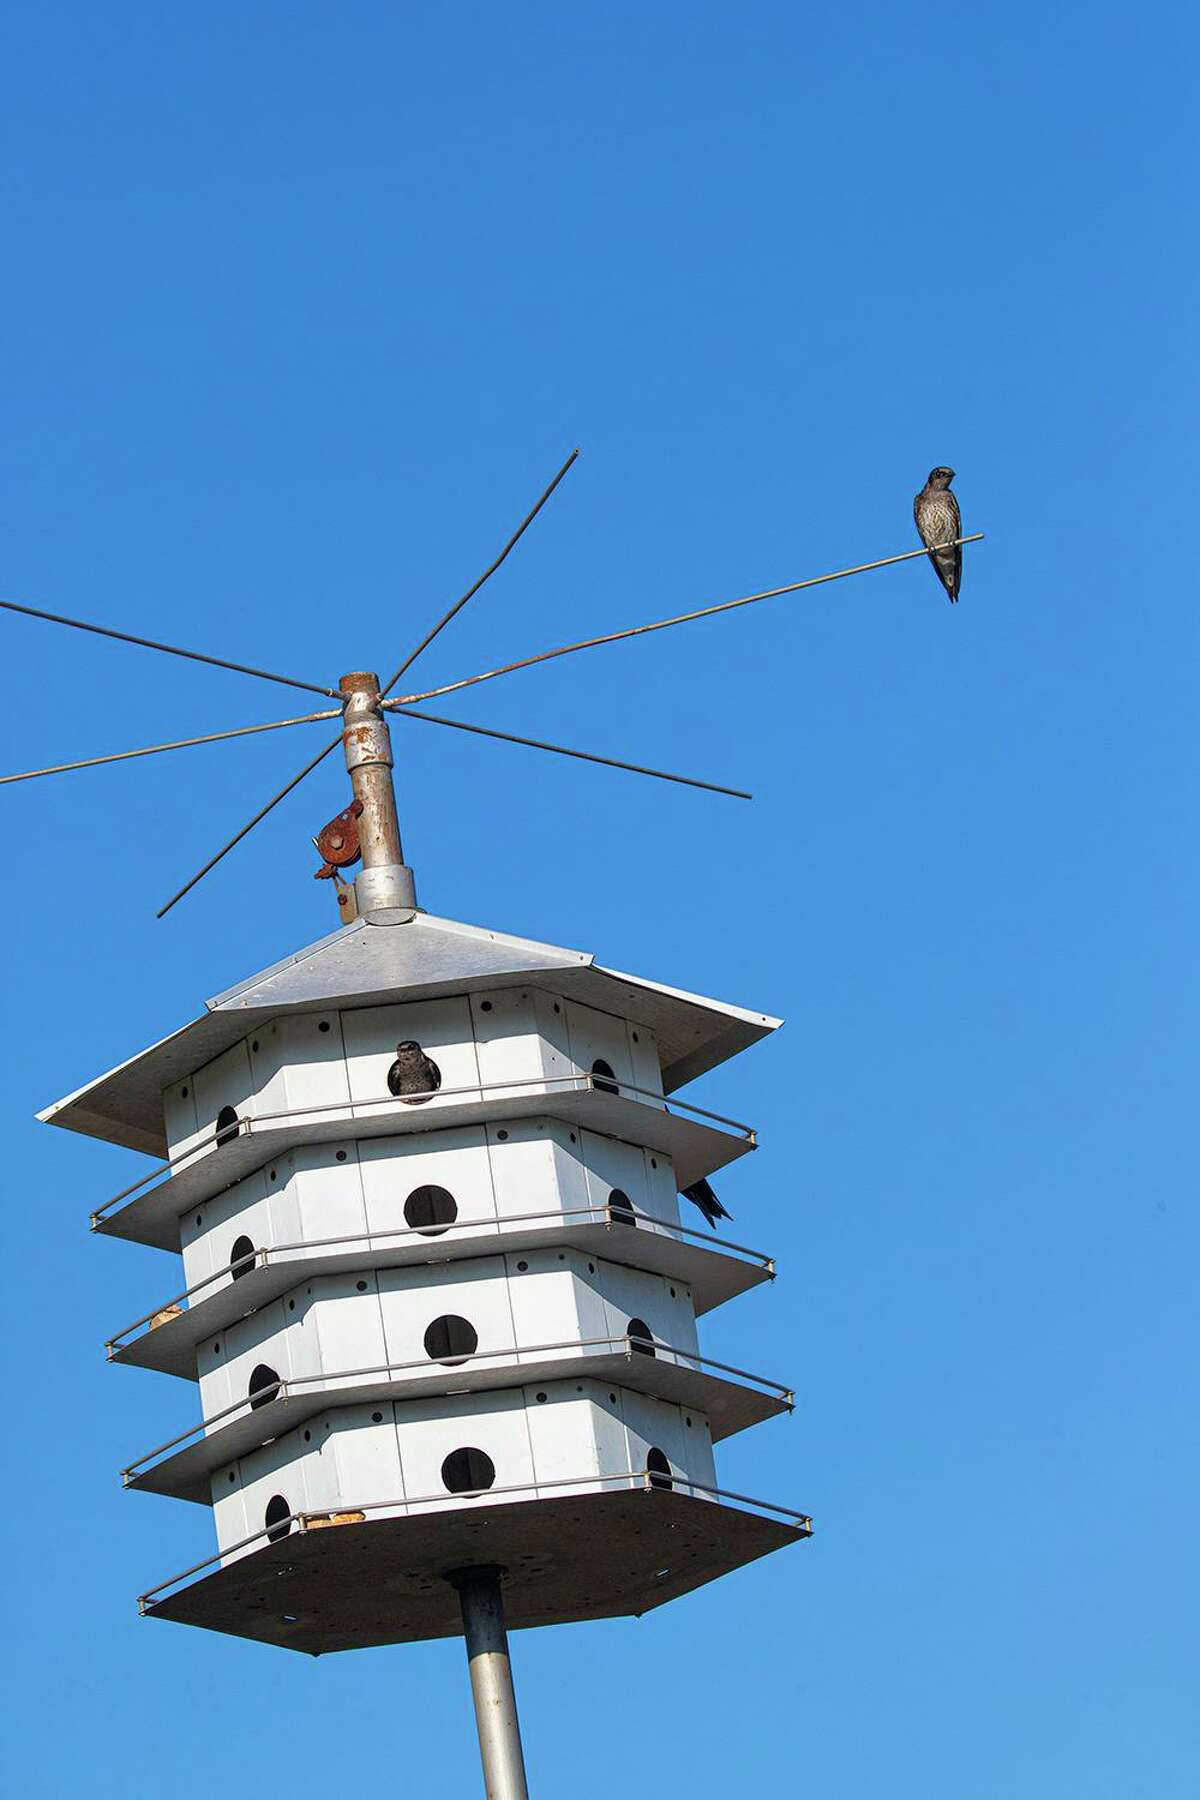 Purple martins are starting to arrive in our area for the summer breeding season. They will build their nests in manmade houses or gourds. Photo